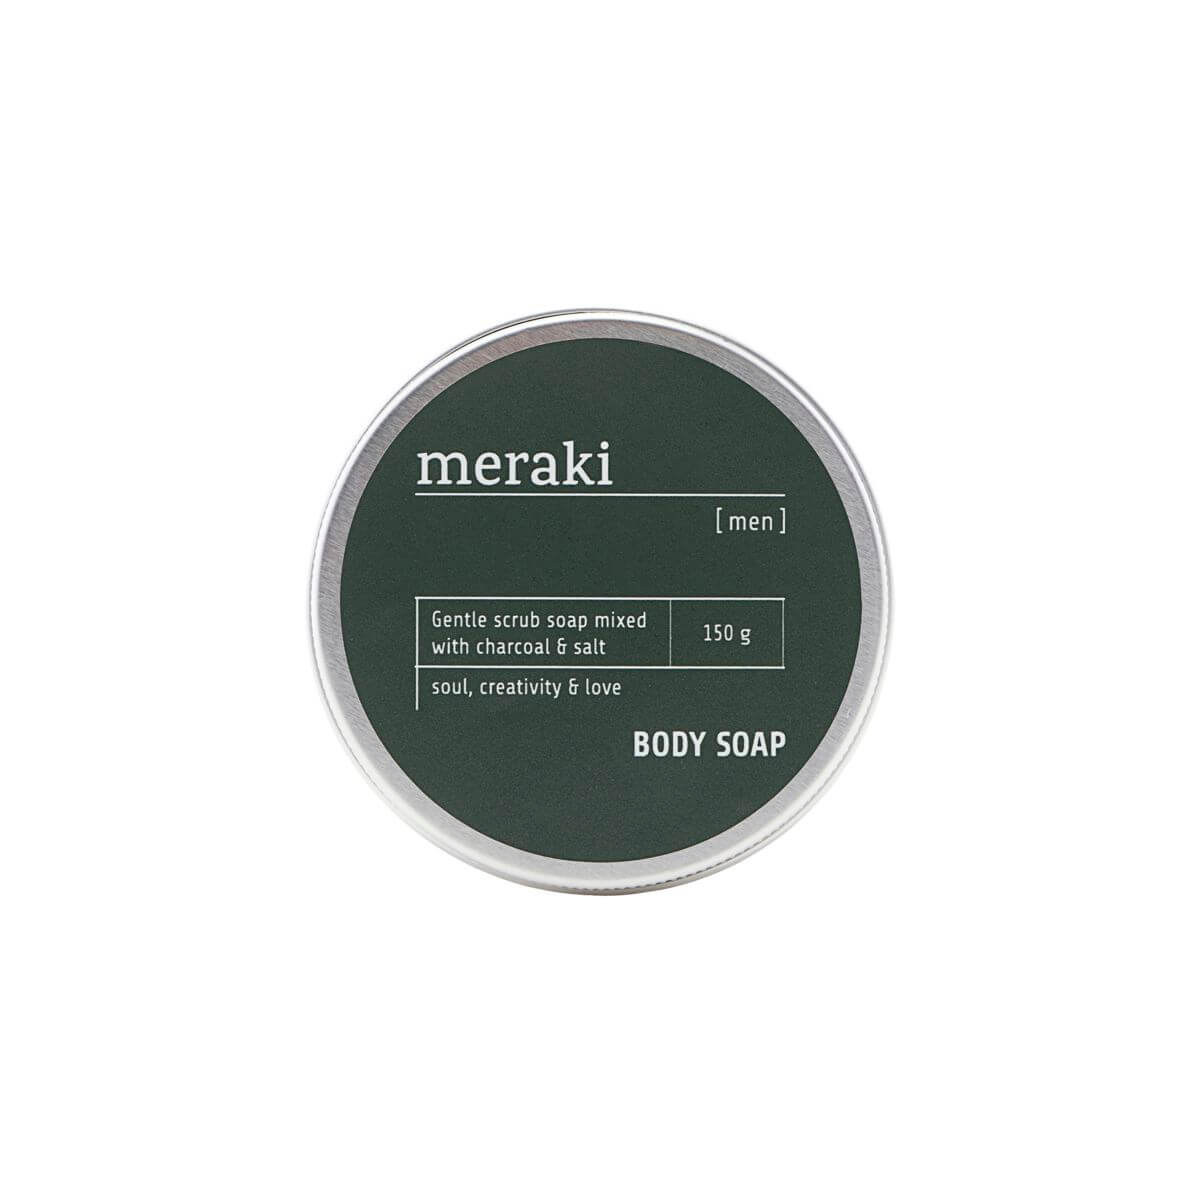 Meraki Body soap, Men, Charcoal & Salt, 150 g.